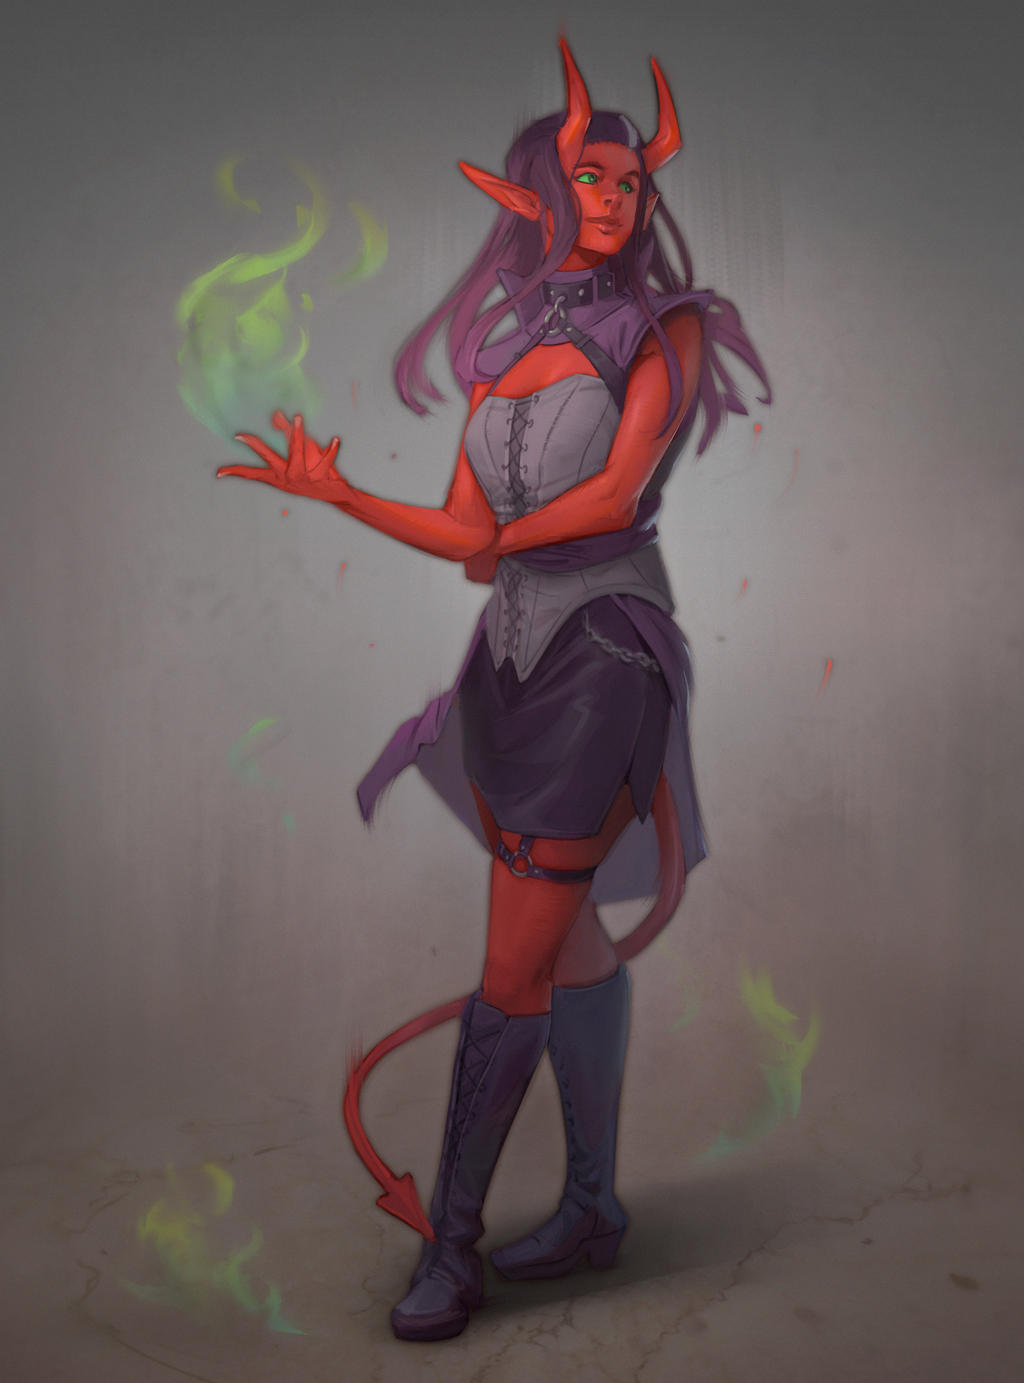 A Tiefling commission!